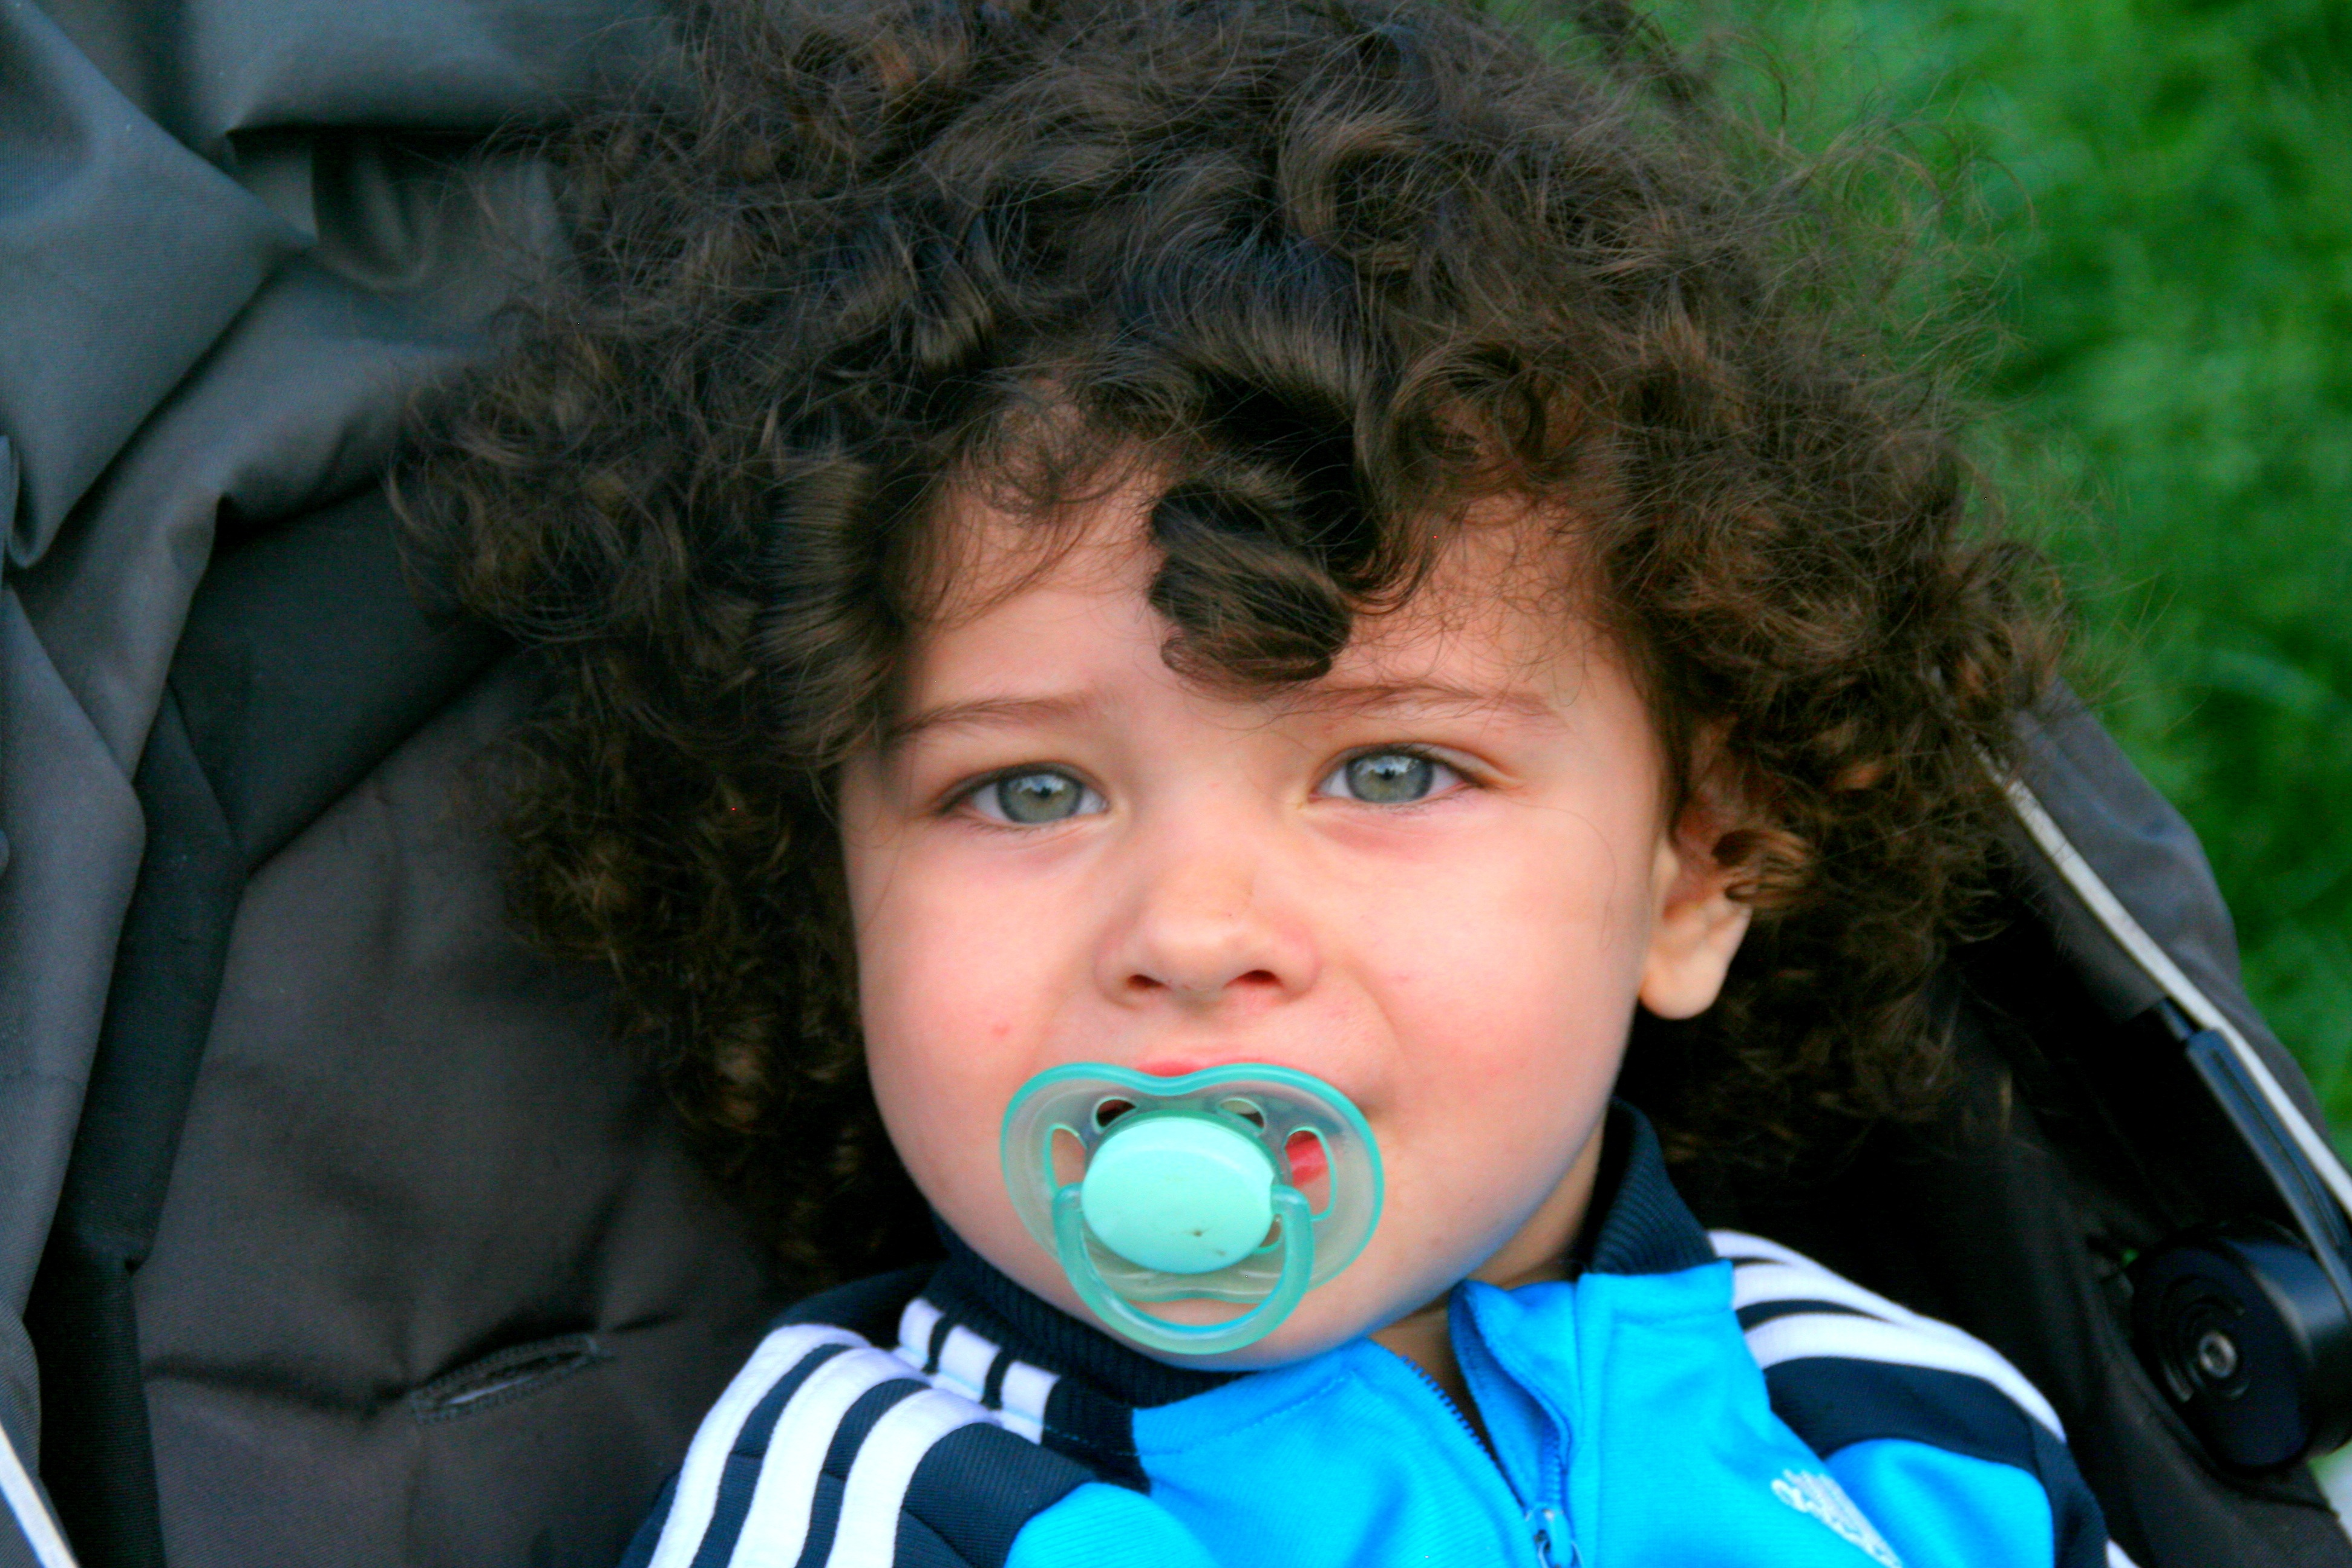 Curly Haired Blue Eyed Child With A Pacifier Free Image